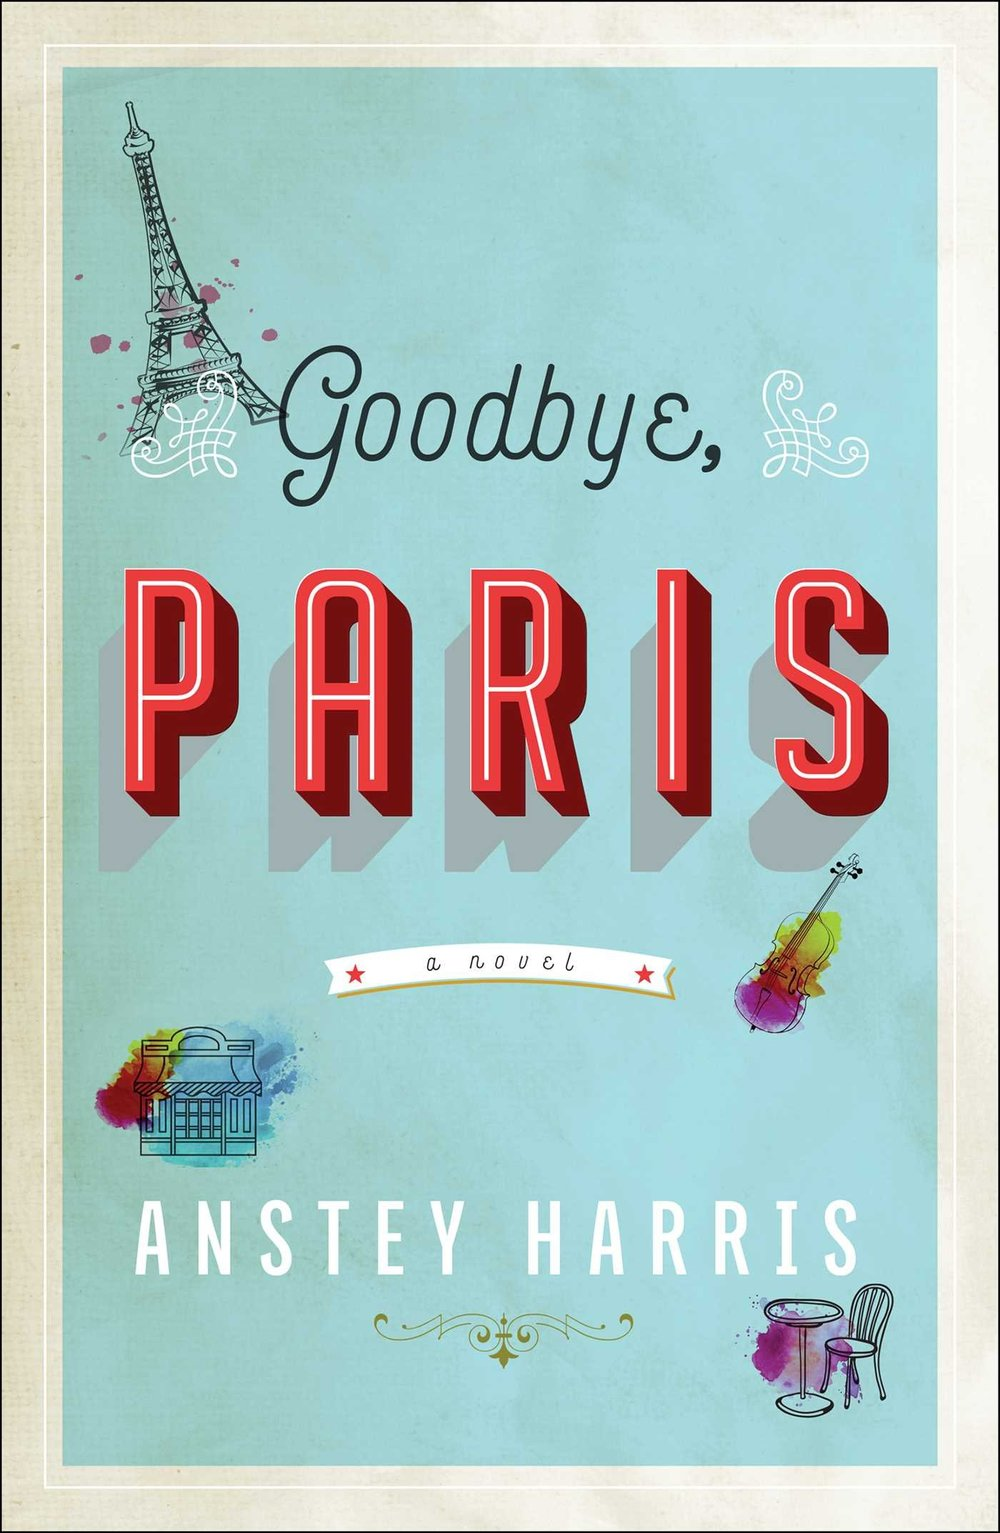 anstey-harris-paris.jpg